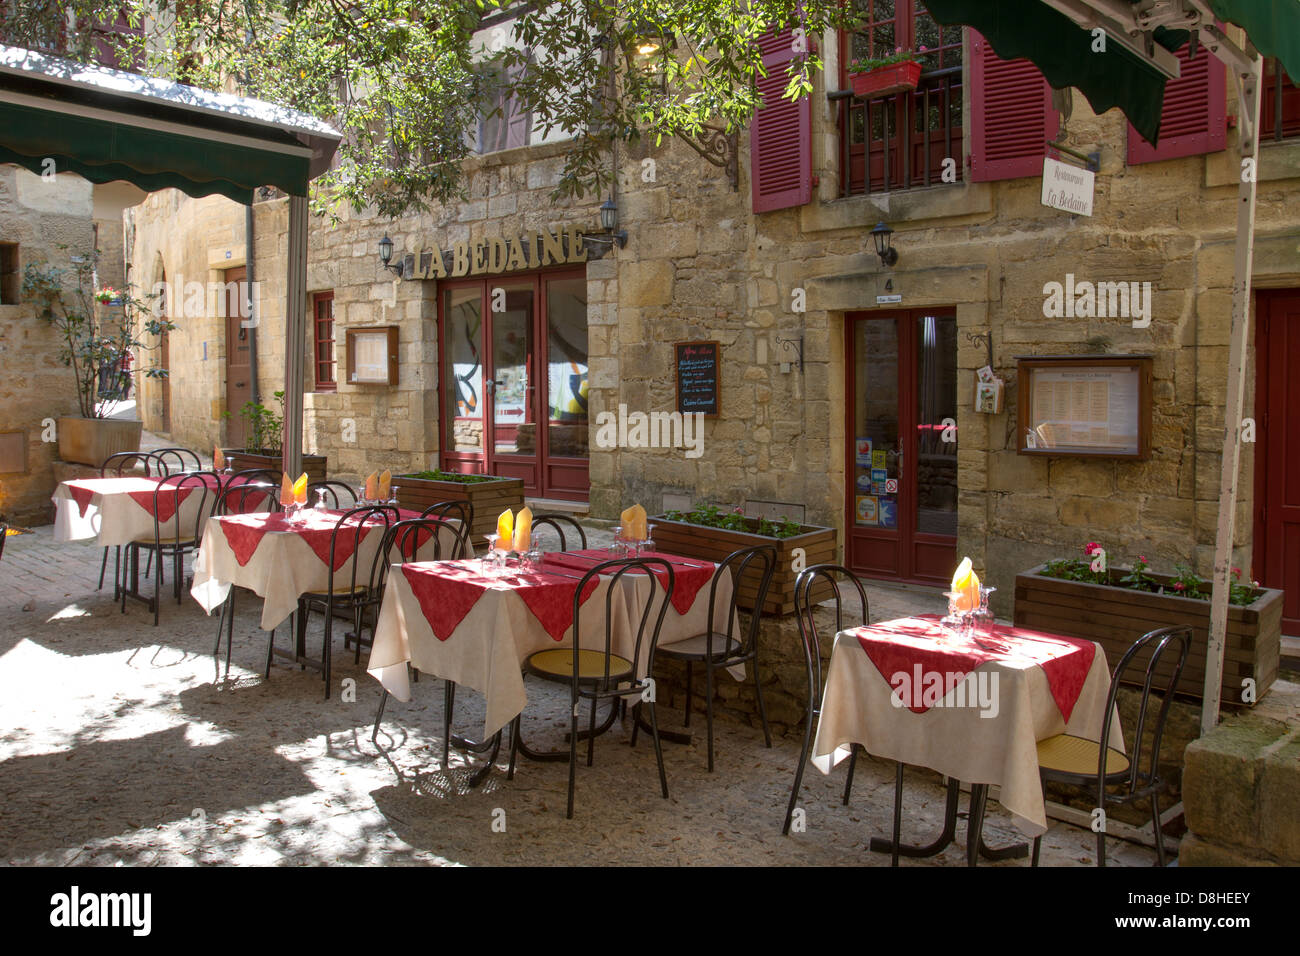 Sun-dappled outdoor courtyard restaurant among medieval sandstone buildings in charming Sarlat, Dordogne region - Stock Image